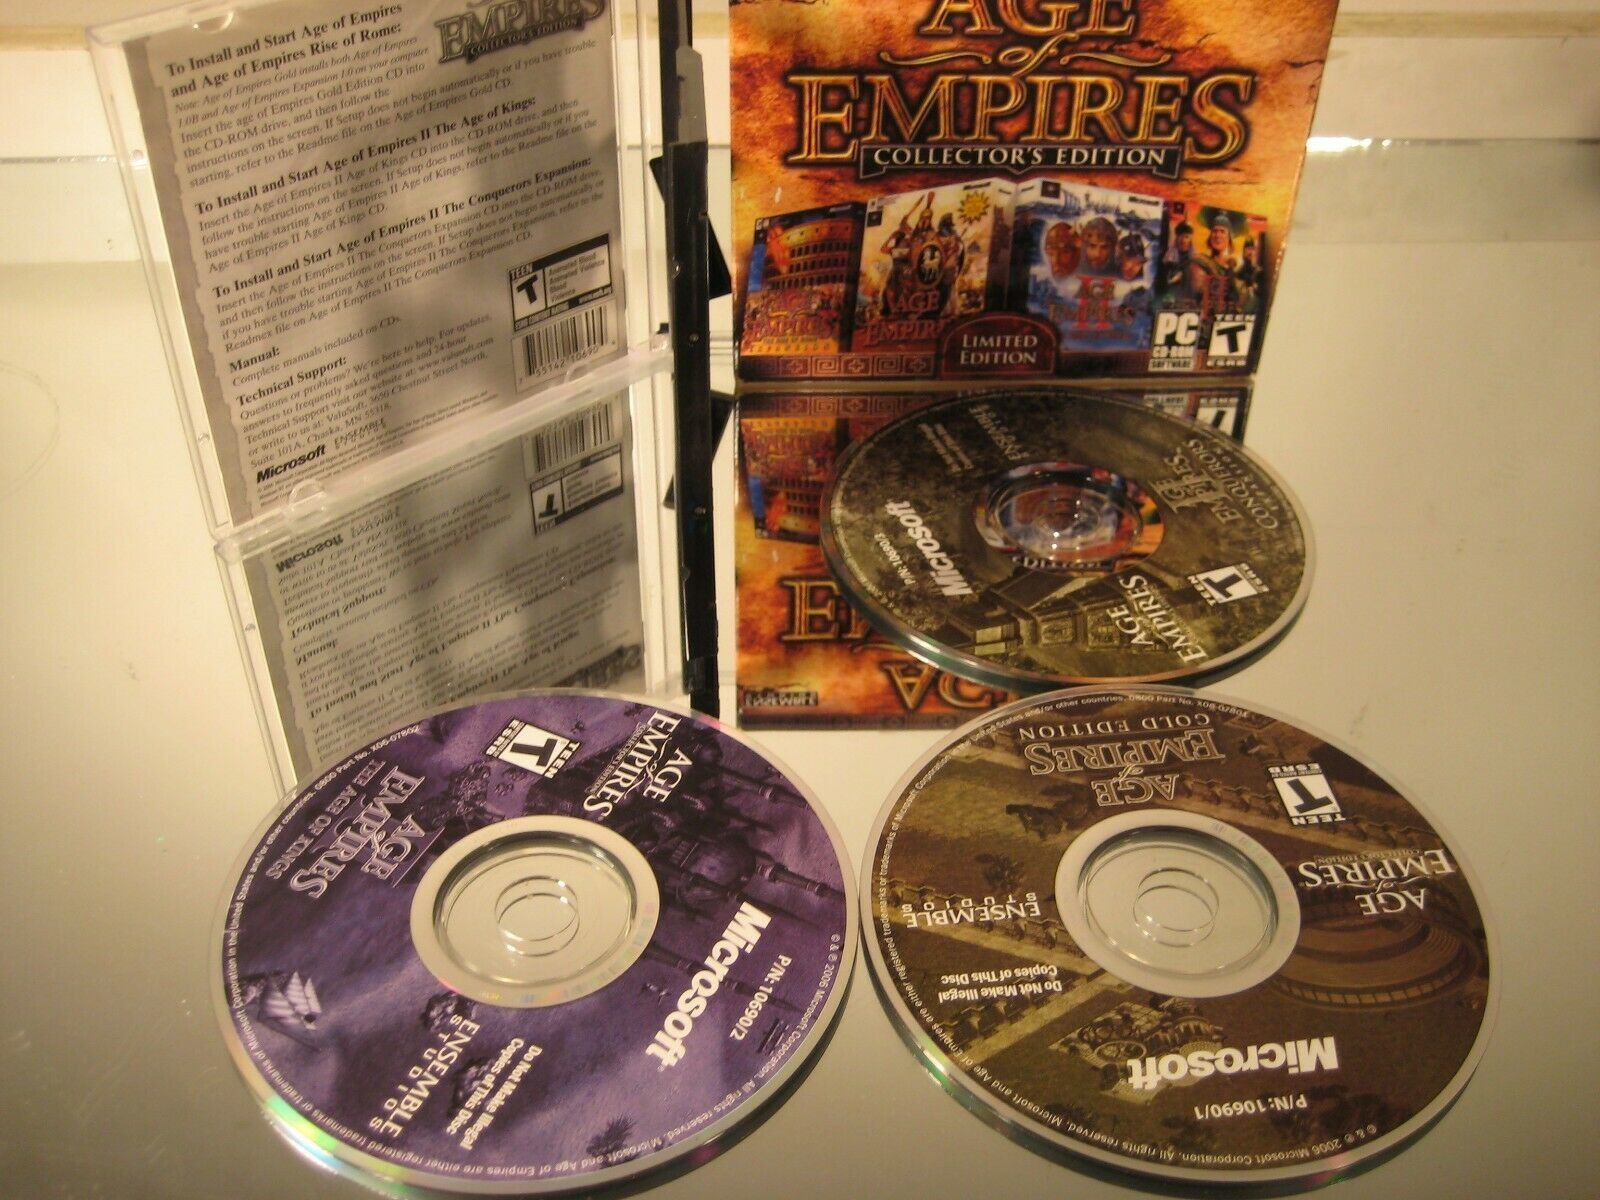 Age of Empires Collectors' Edition 2000 PC CDROM RTS Game image 4